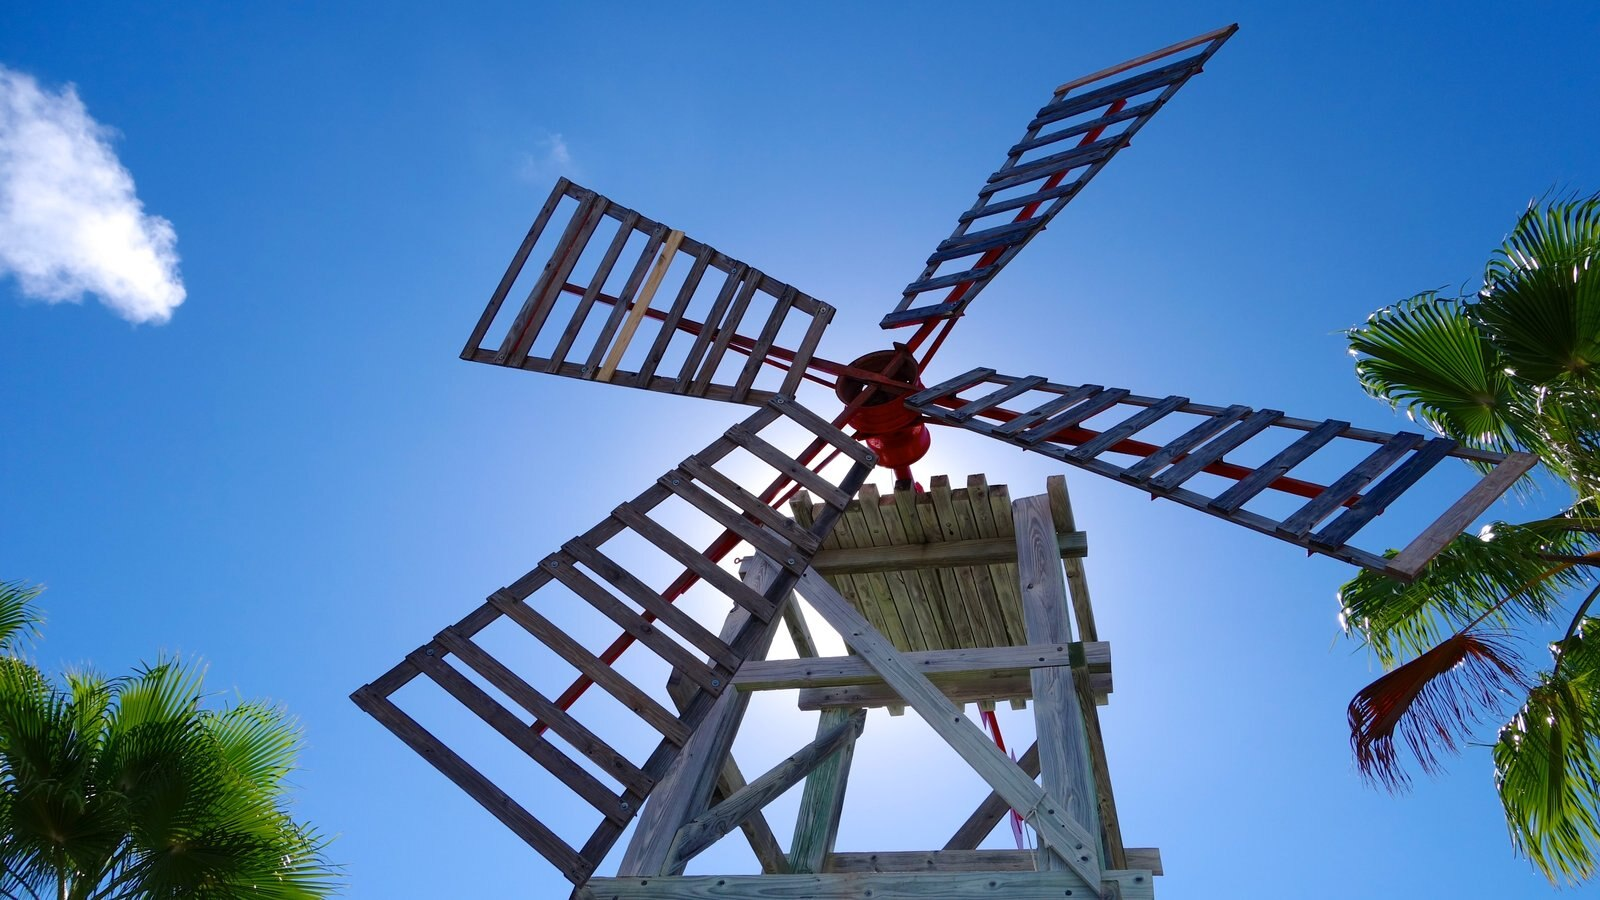 Providenciales which includes a windmill